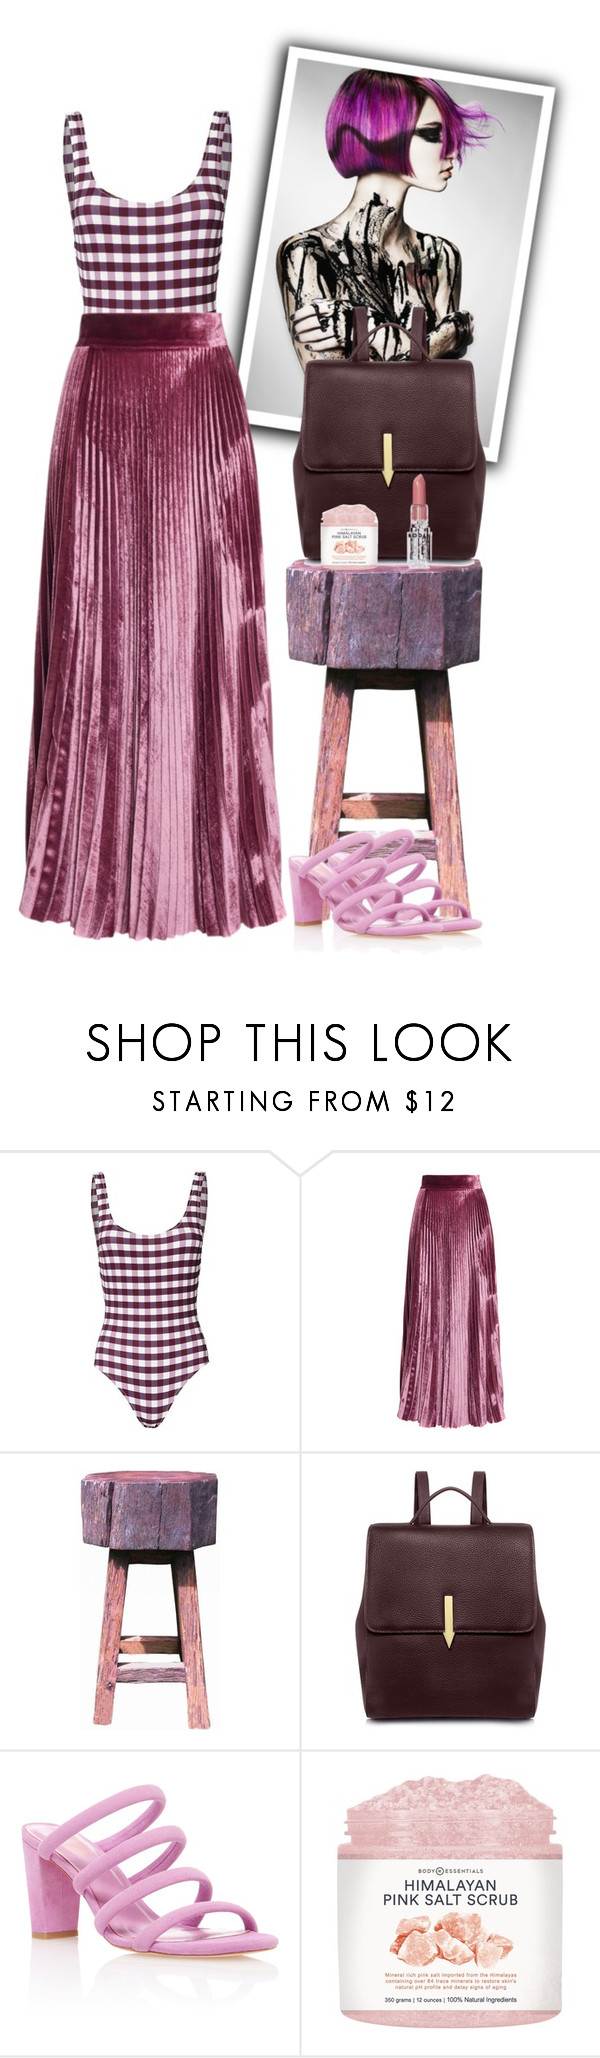 """""""Gingham + Pleats"""" by cherieaustin ❤ liked on Polyvore featuring Solid & Striped, LUISA BECCARIA, GroovyStuff, Karen Walker and Rodin"""